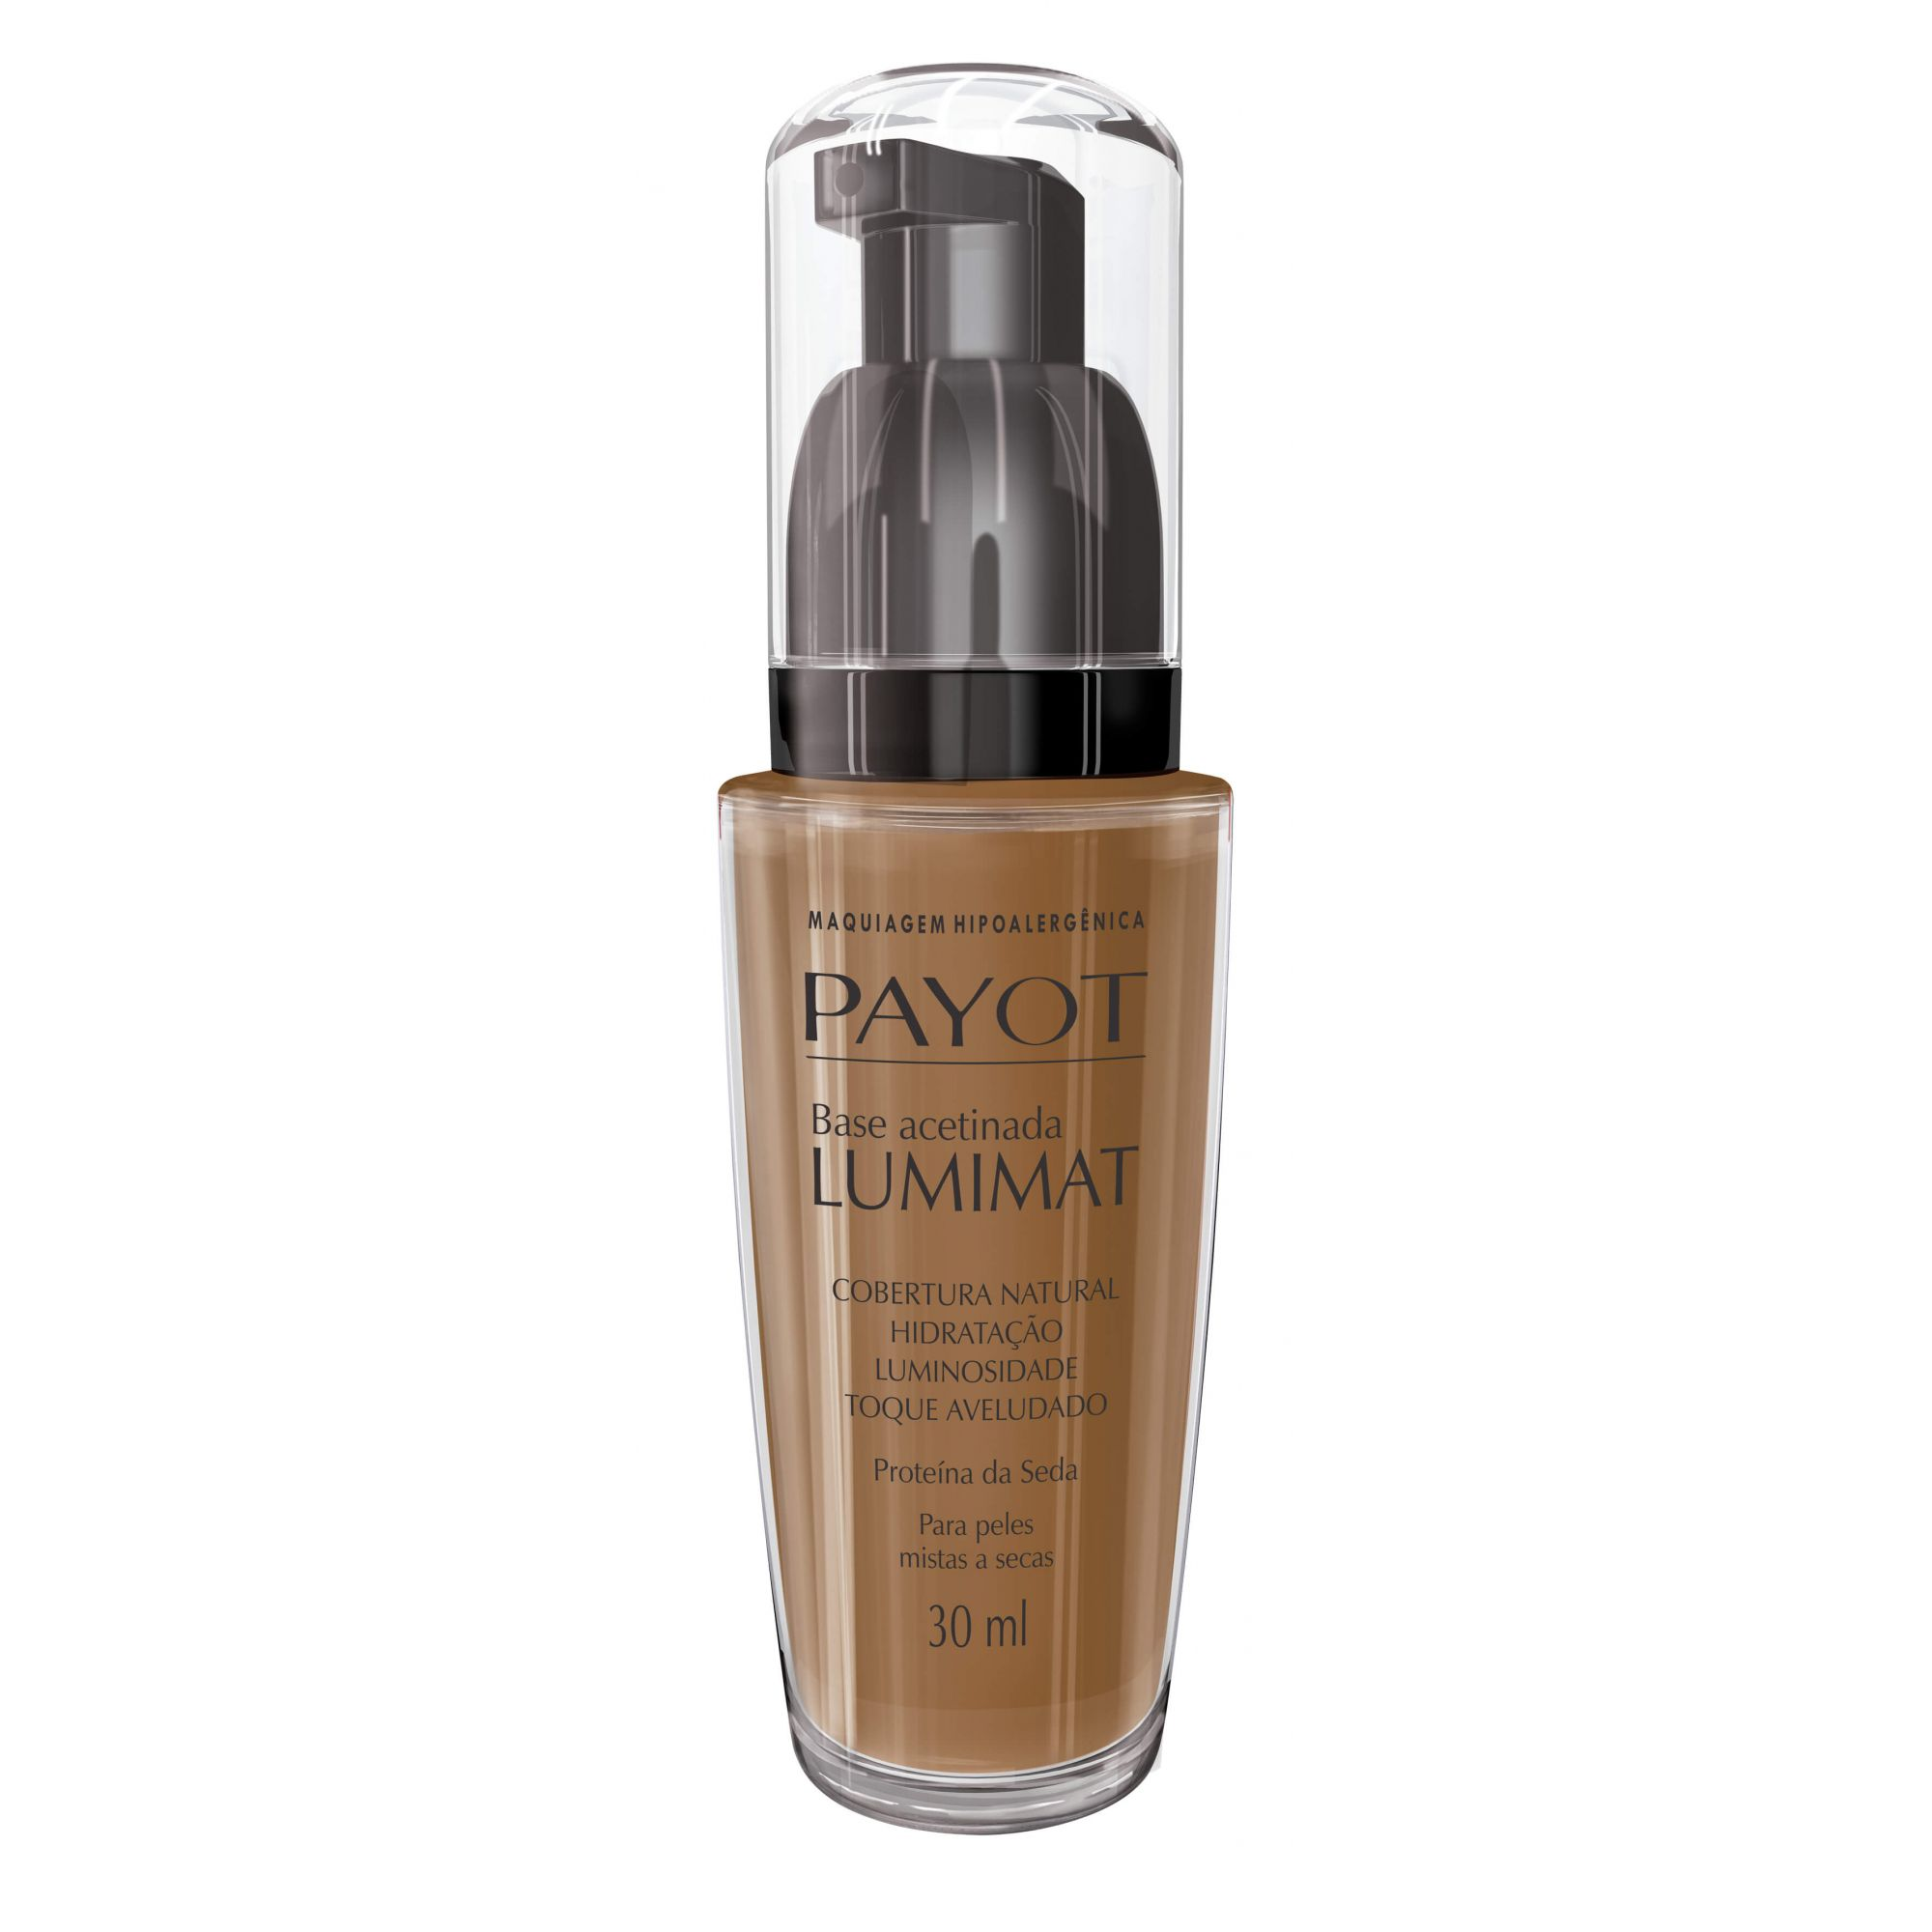 Luminant Base Líquida Payot Cannelle - Base Líquida Acetinada 30ml